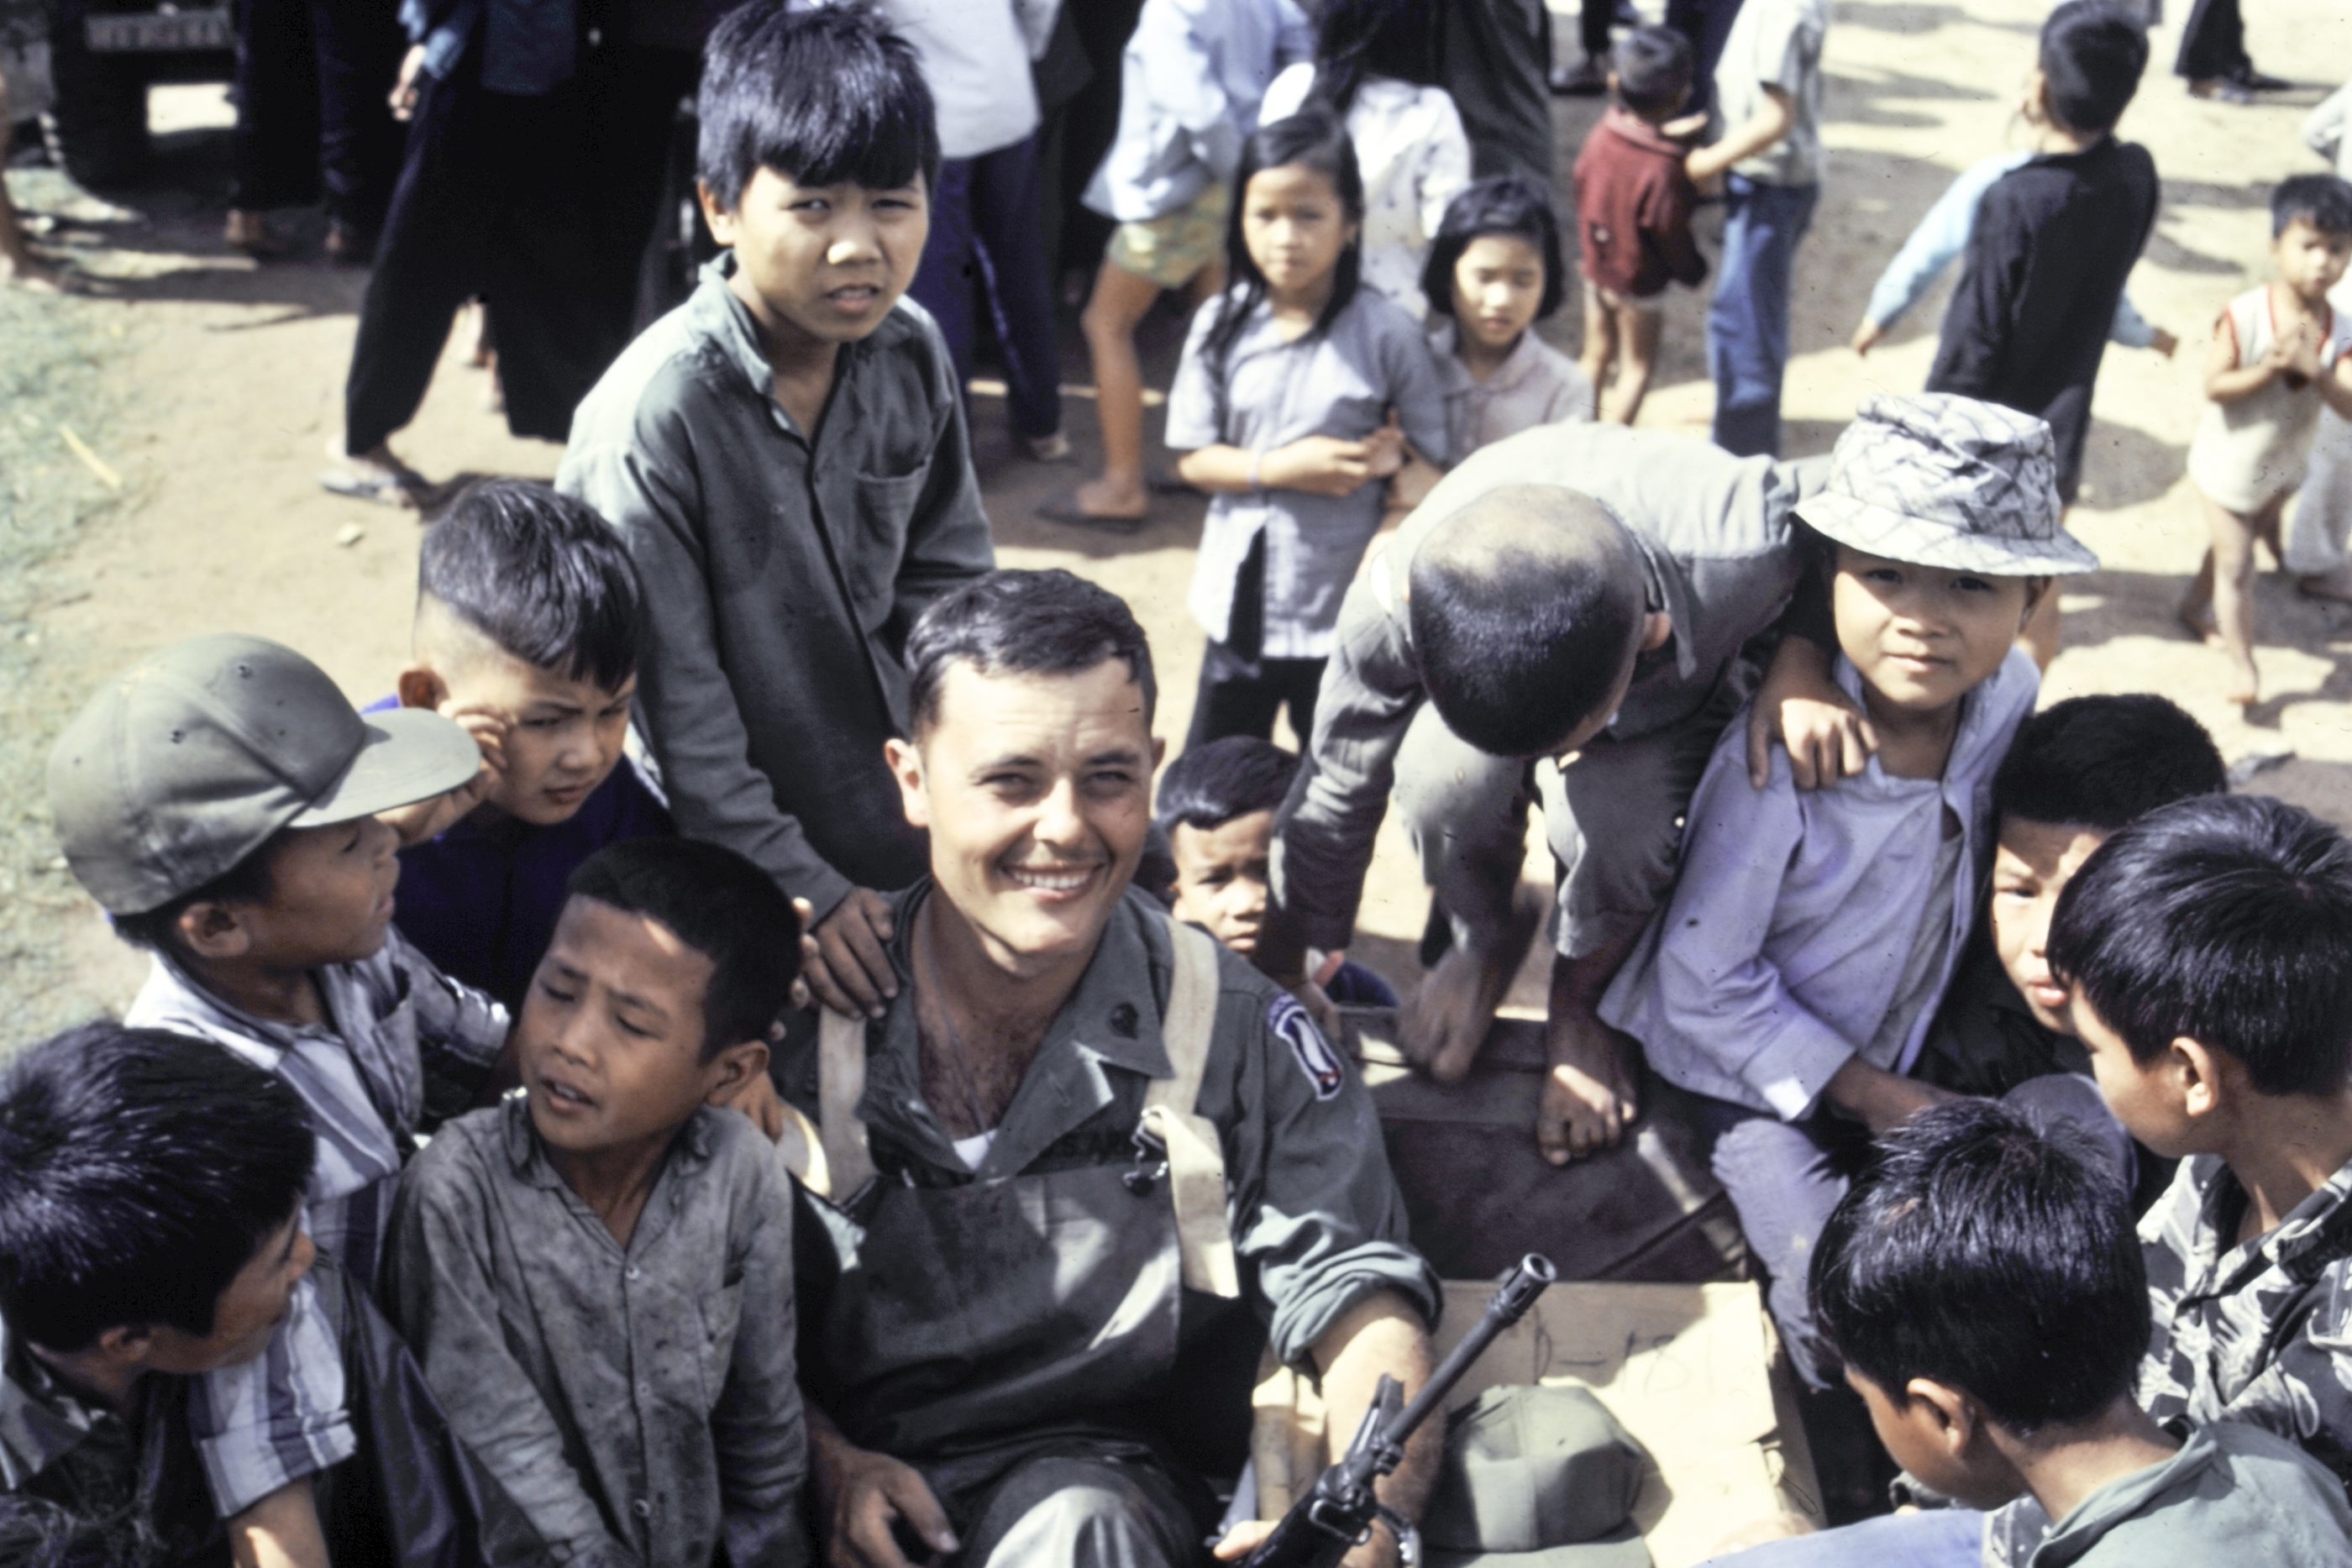 Army Spc. 4th Class Richard Szczepaniec while helping young Vietnamese villagers in wartime as part of Medical Civic Action Program, or MEDCAP.